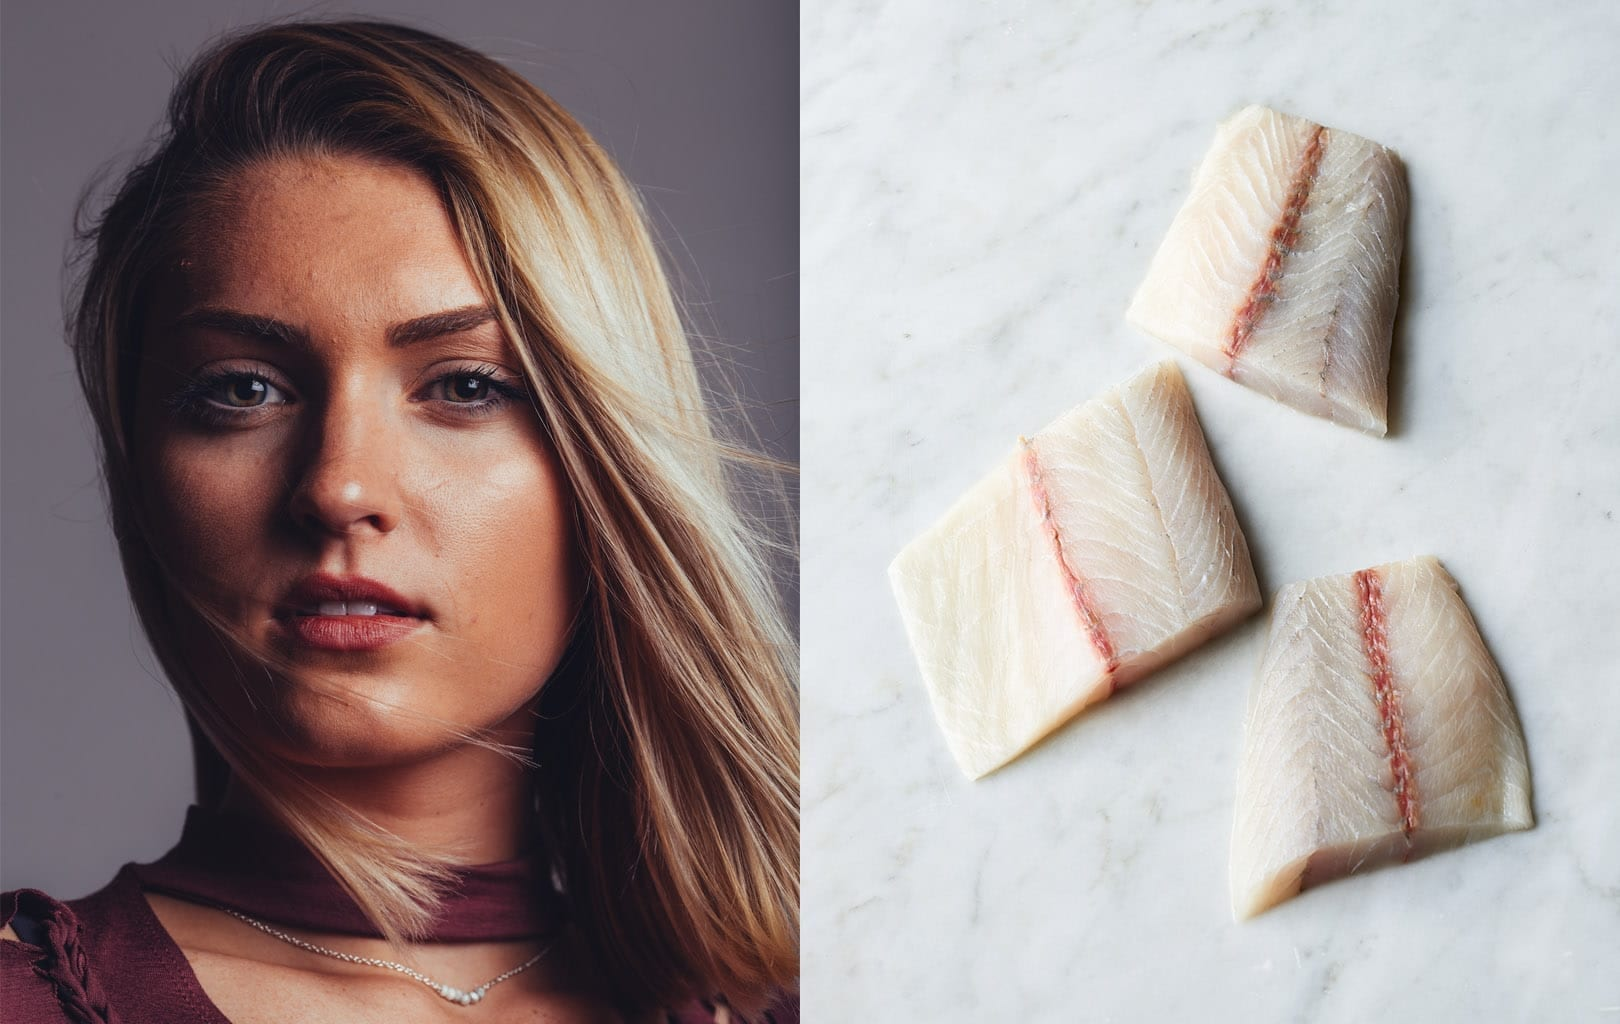 Face of woman juxtaposed next to fish fillets